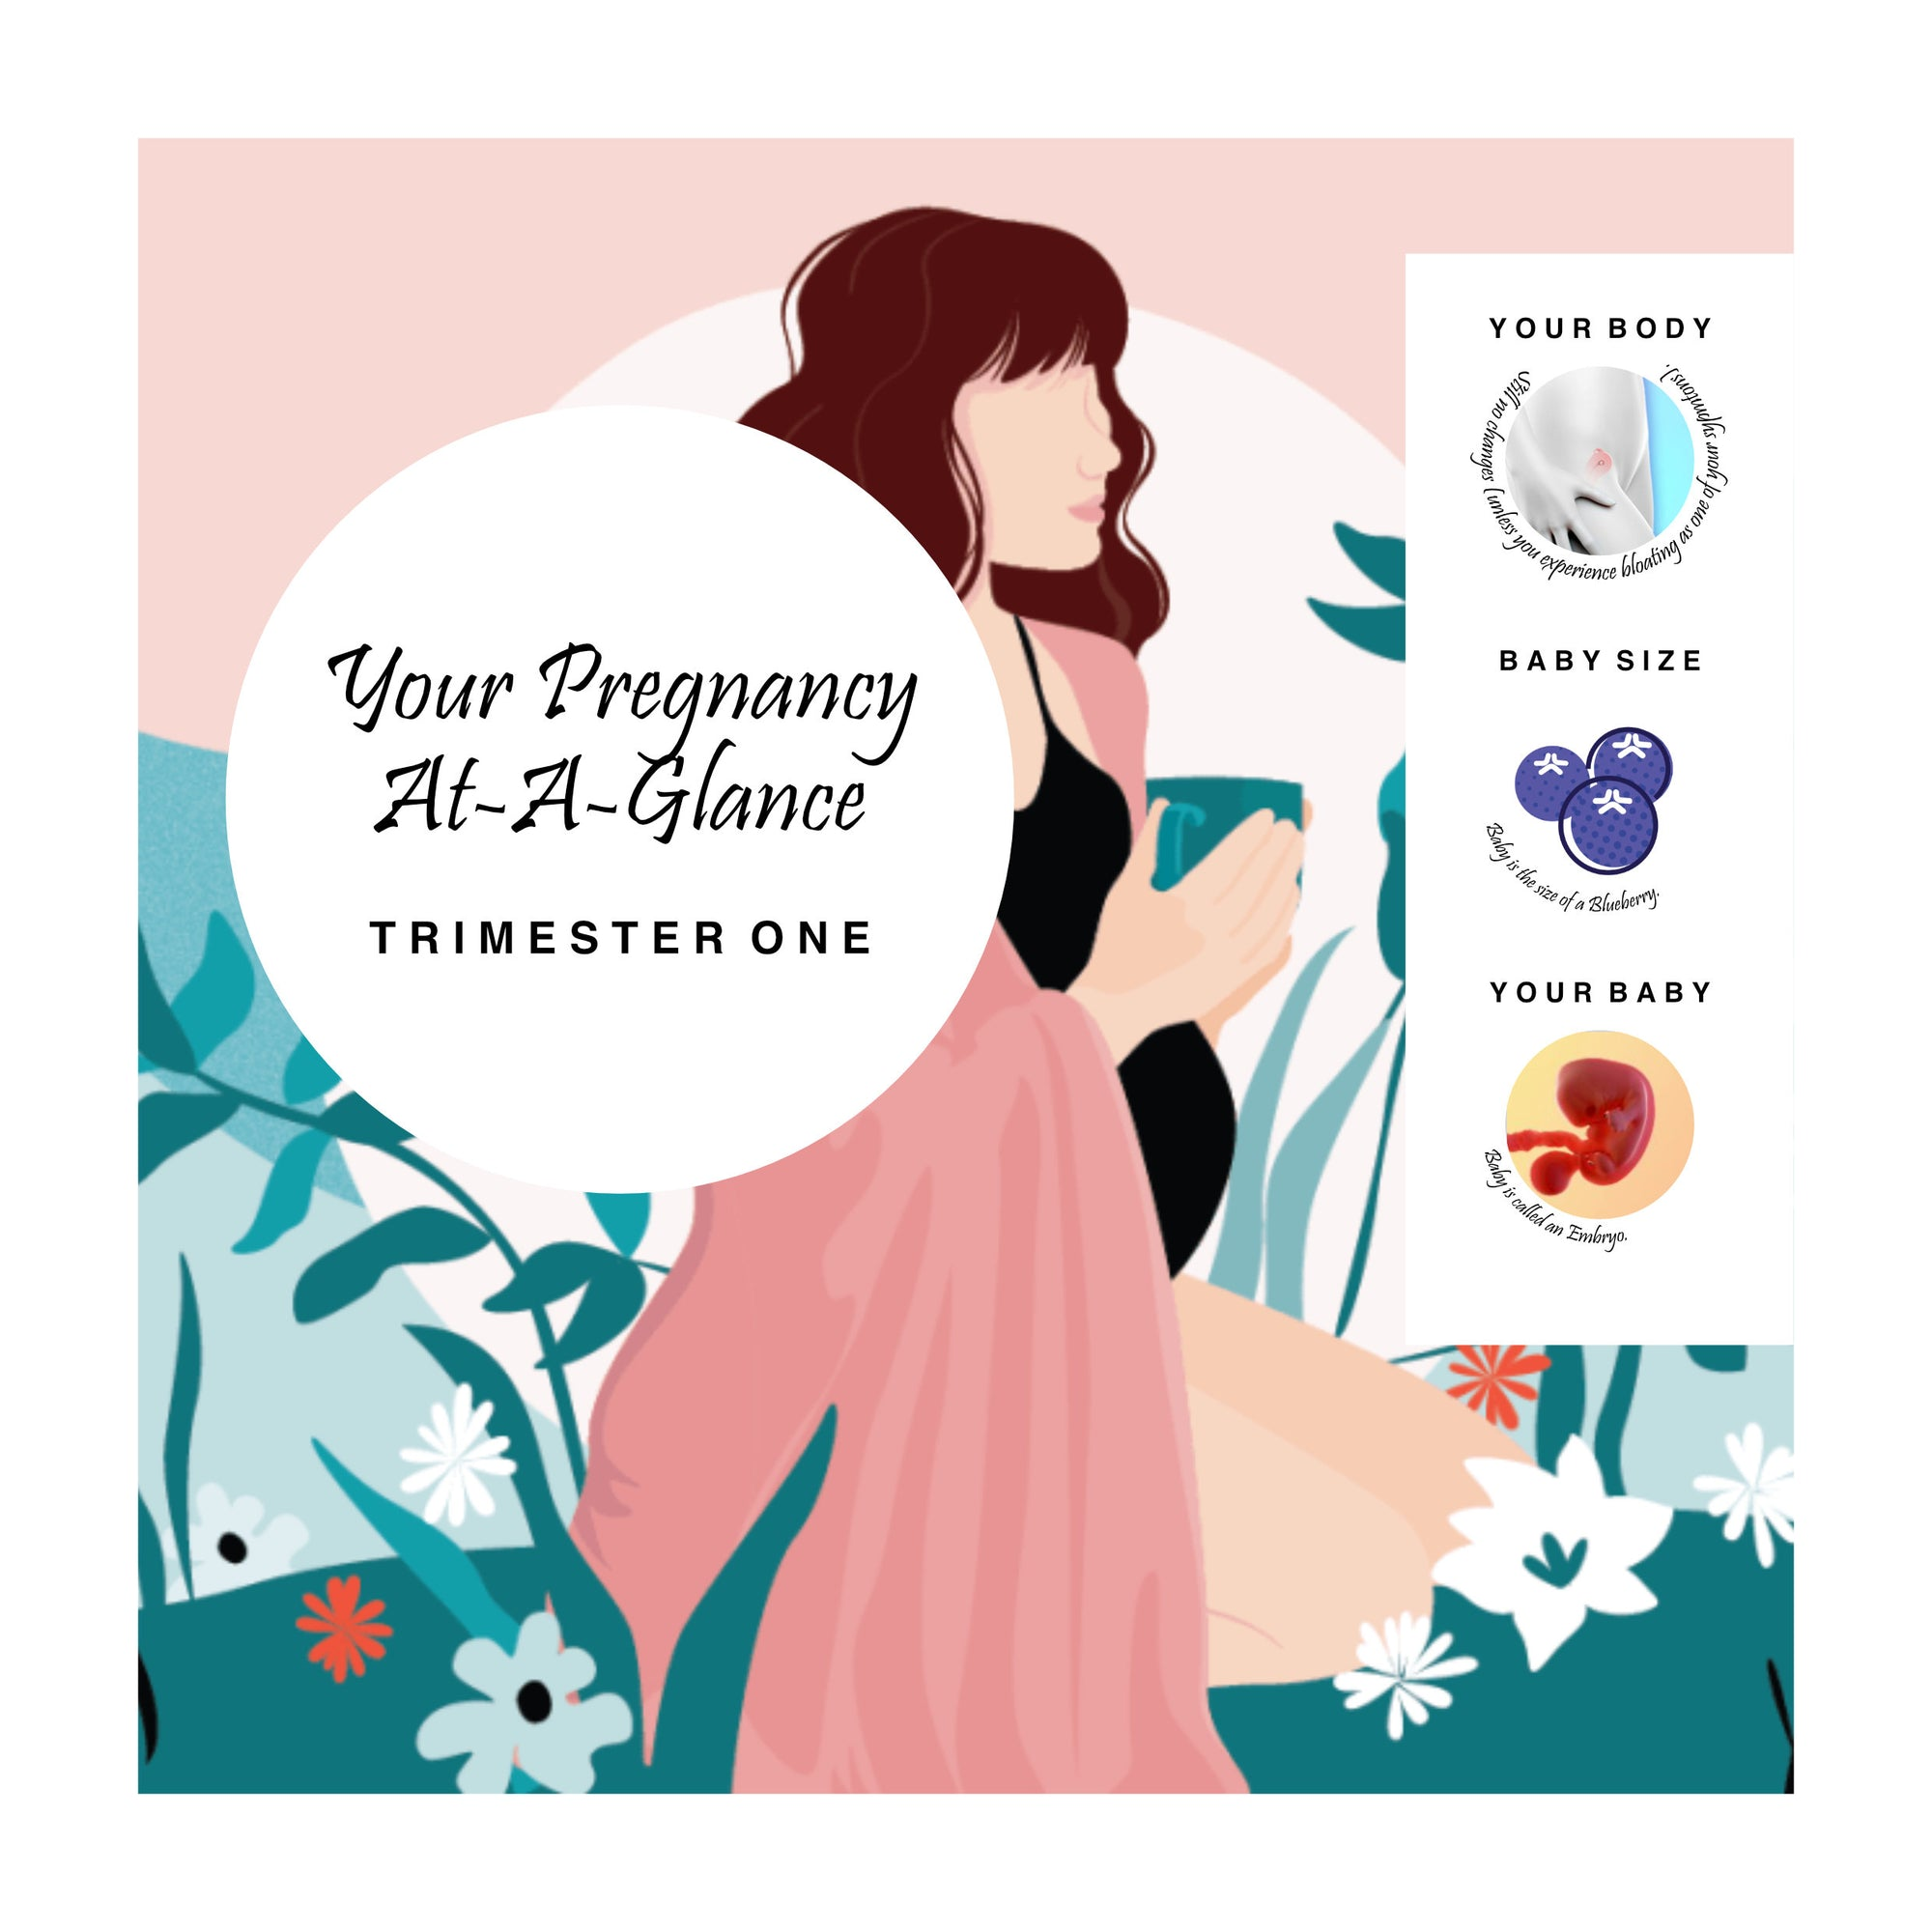 Preview of Your Pregnancy Cards Trimester One